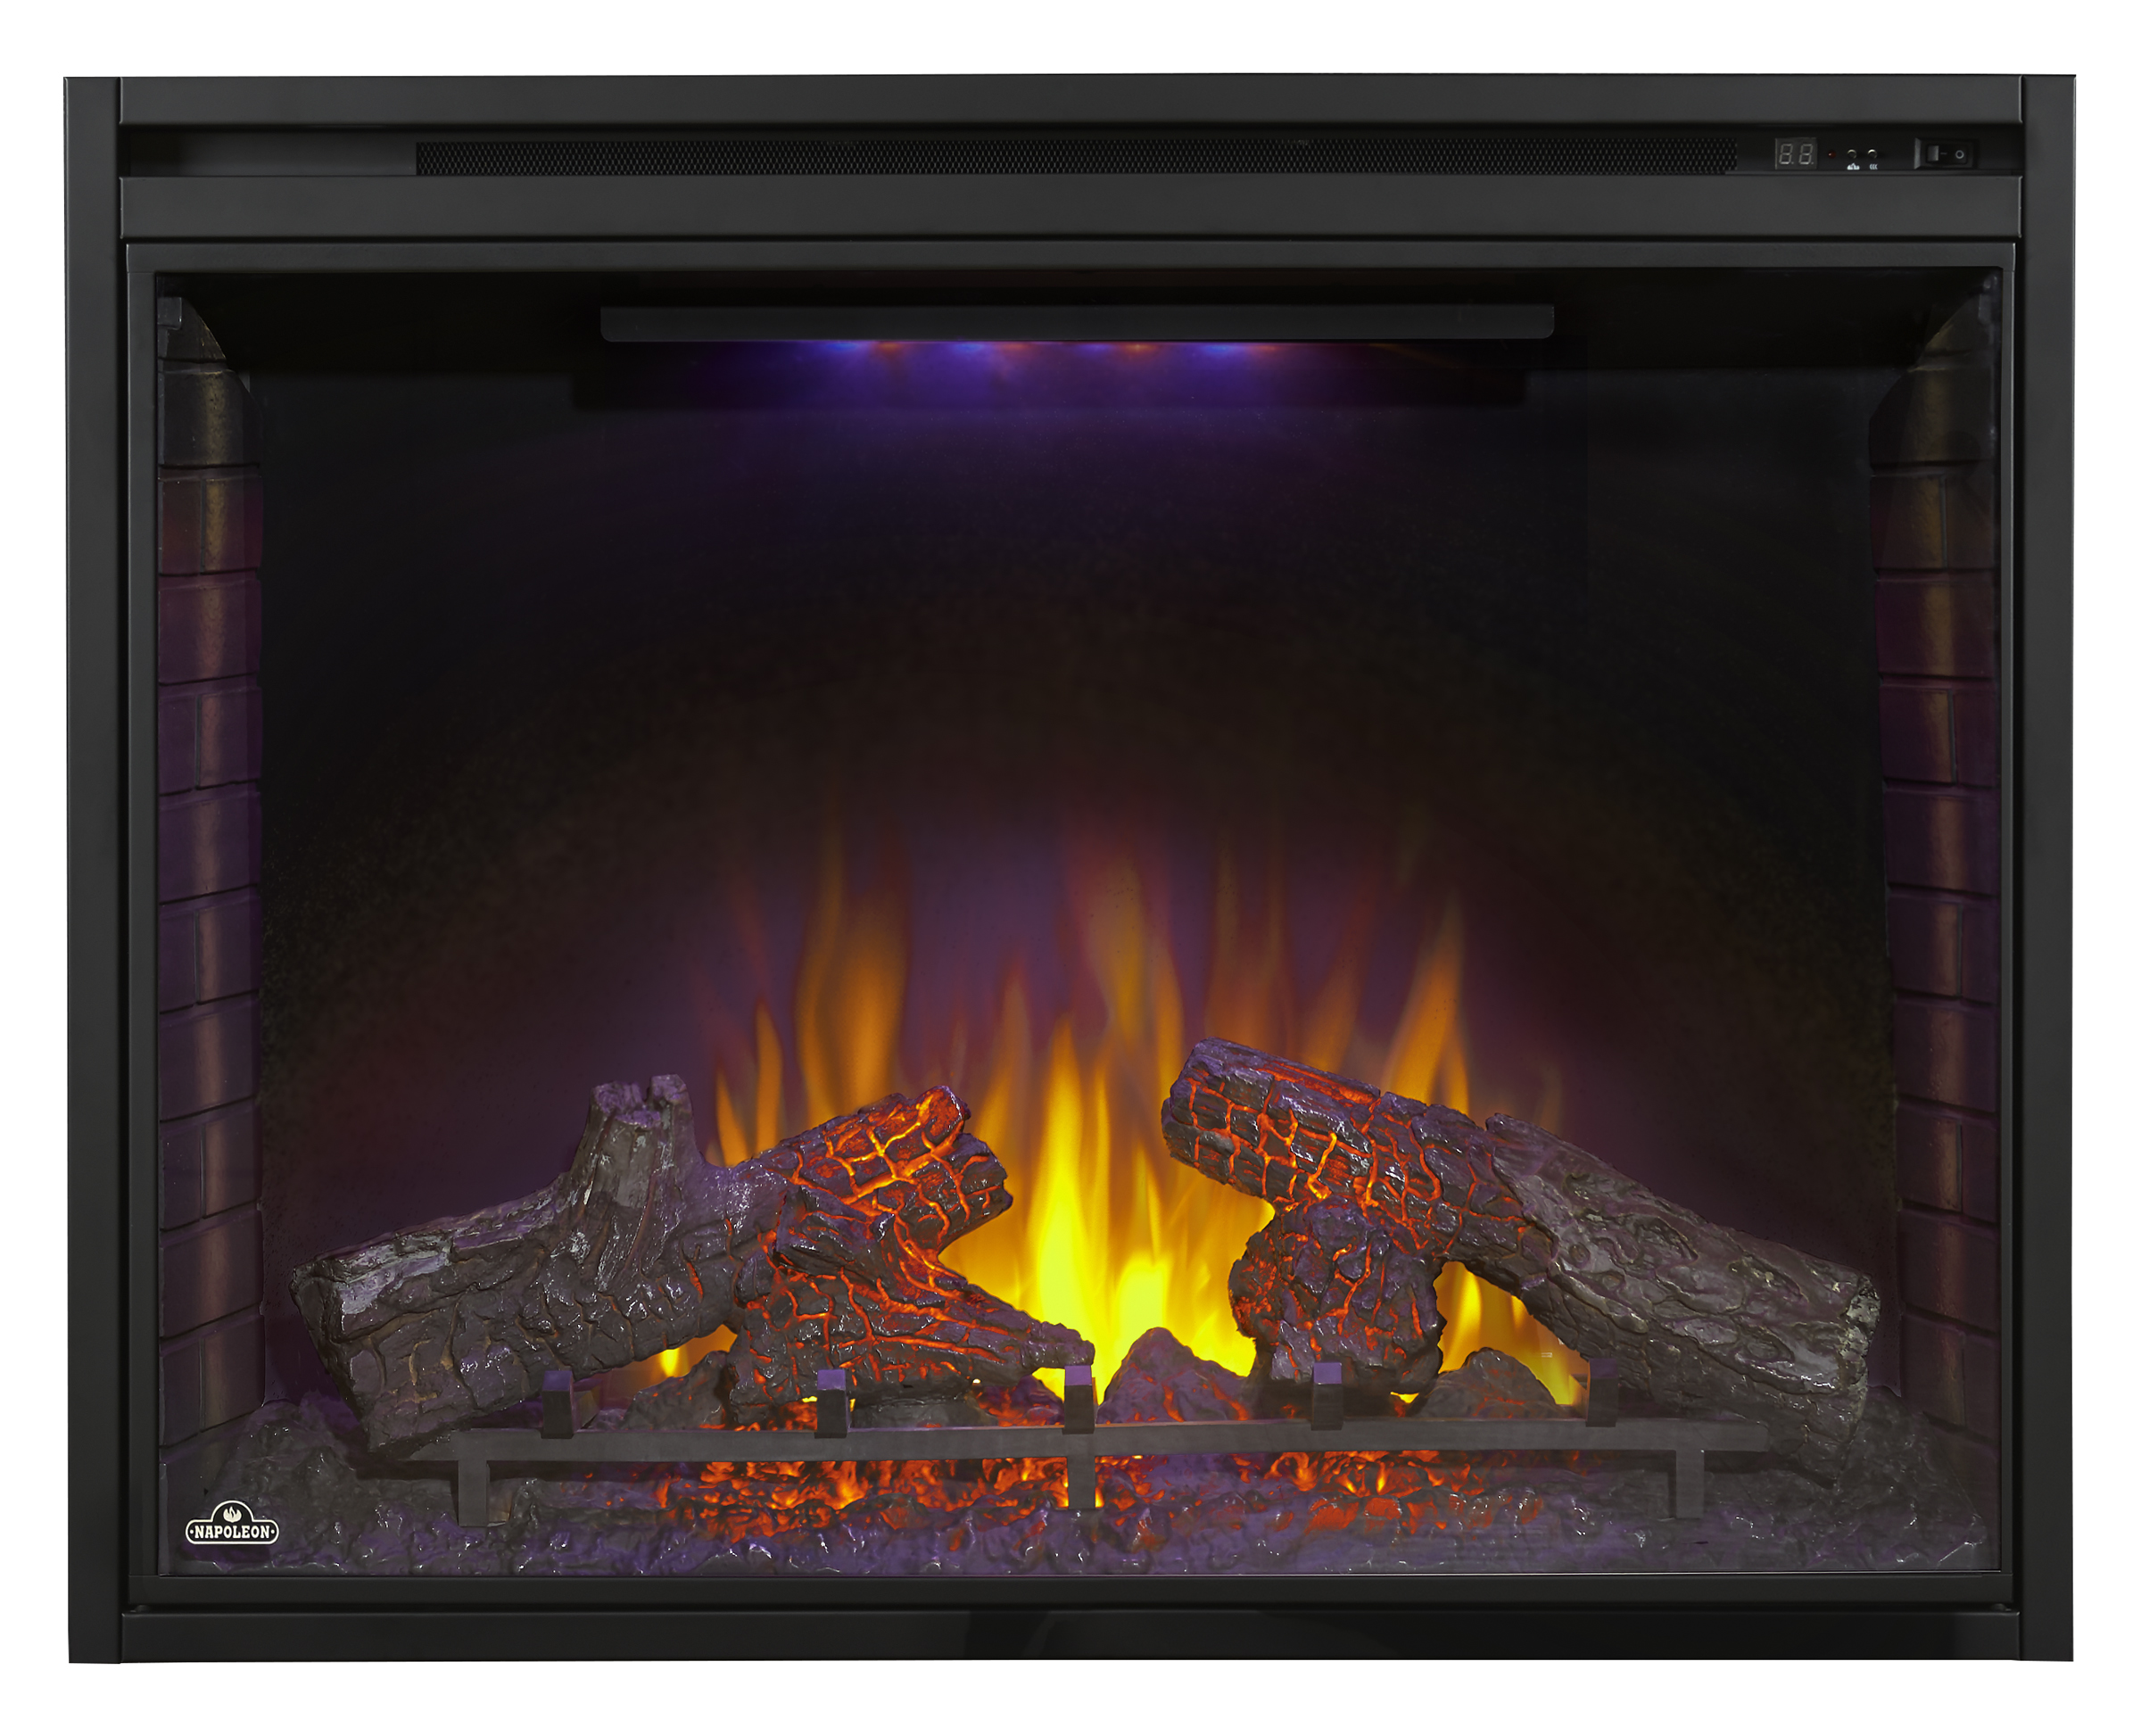 bef40h-purple-napoleon-fireplaces.jpg